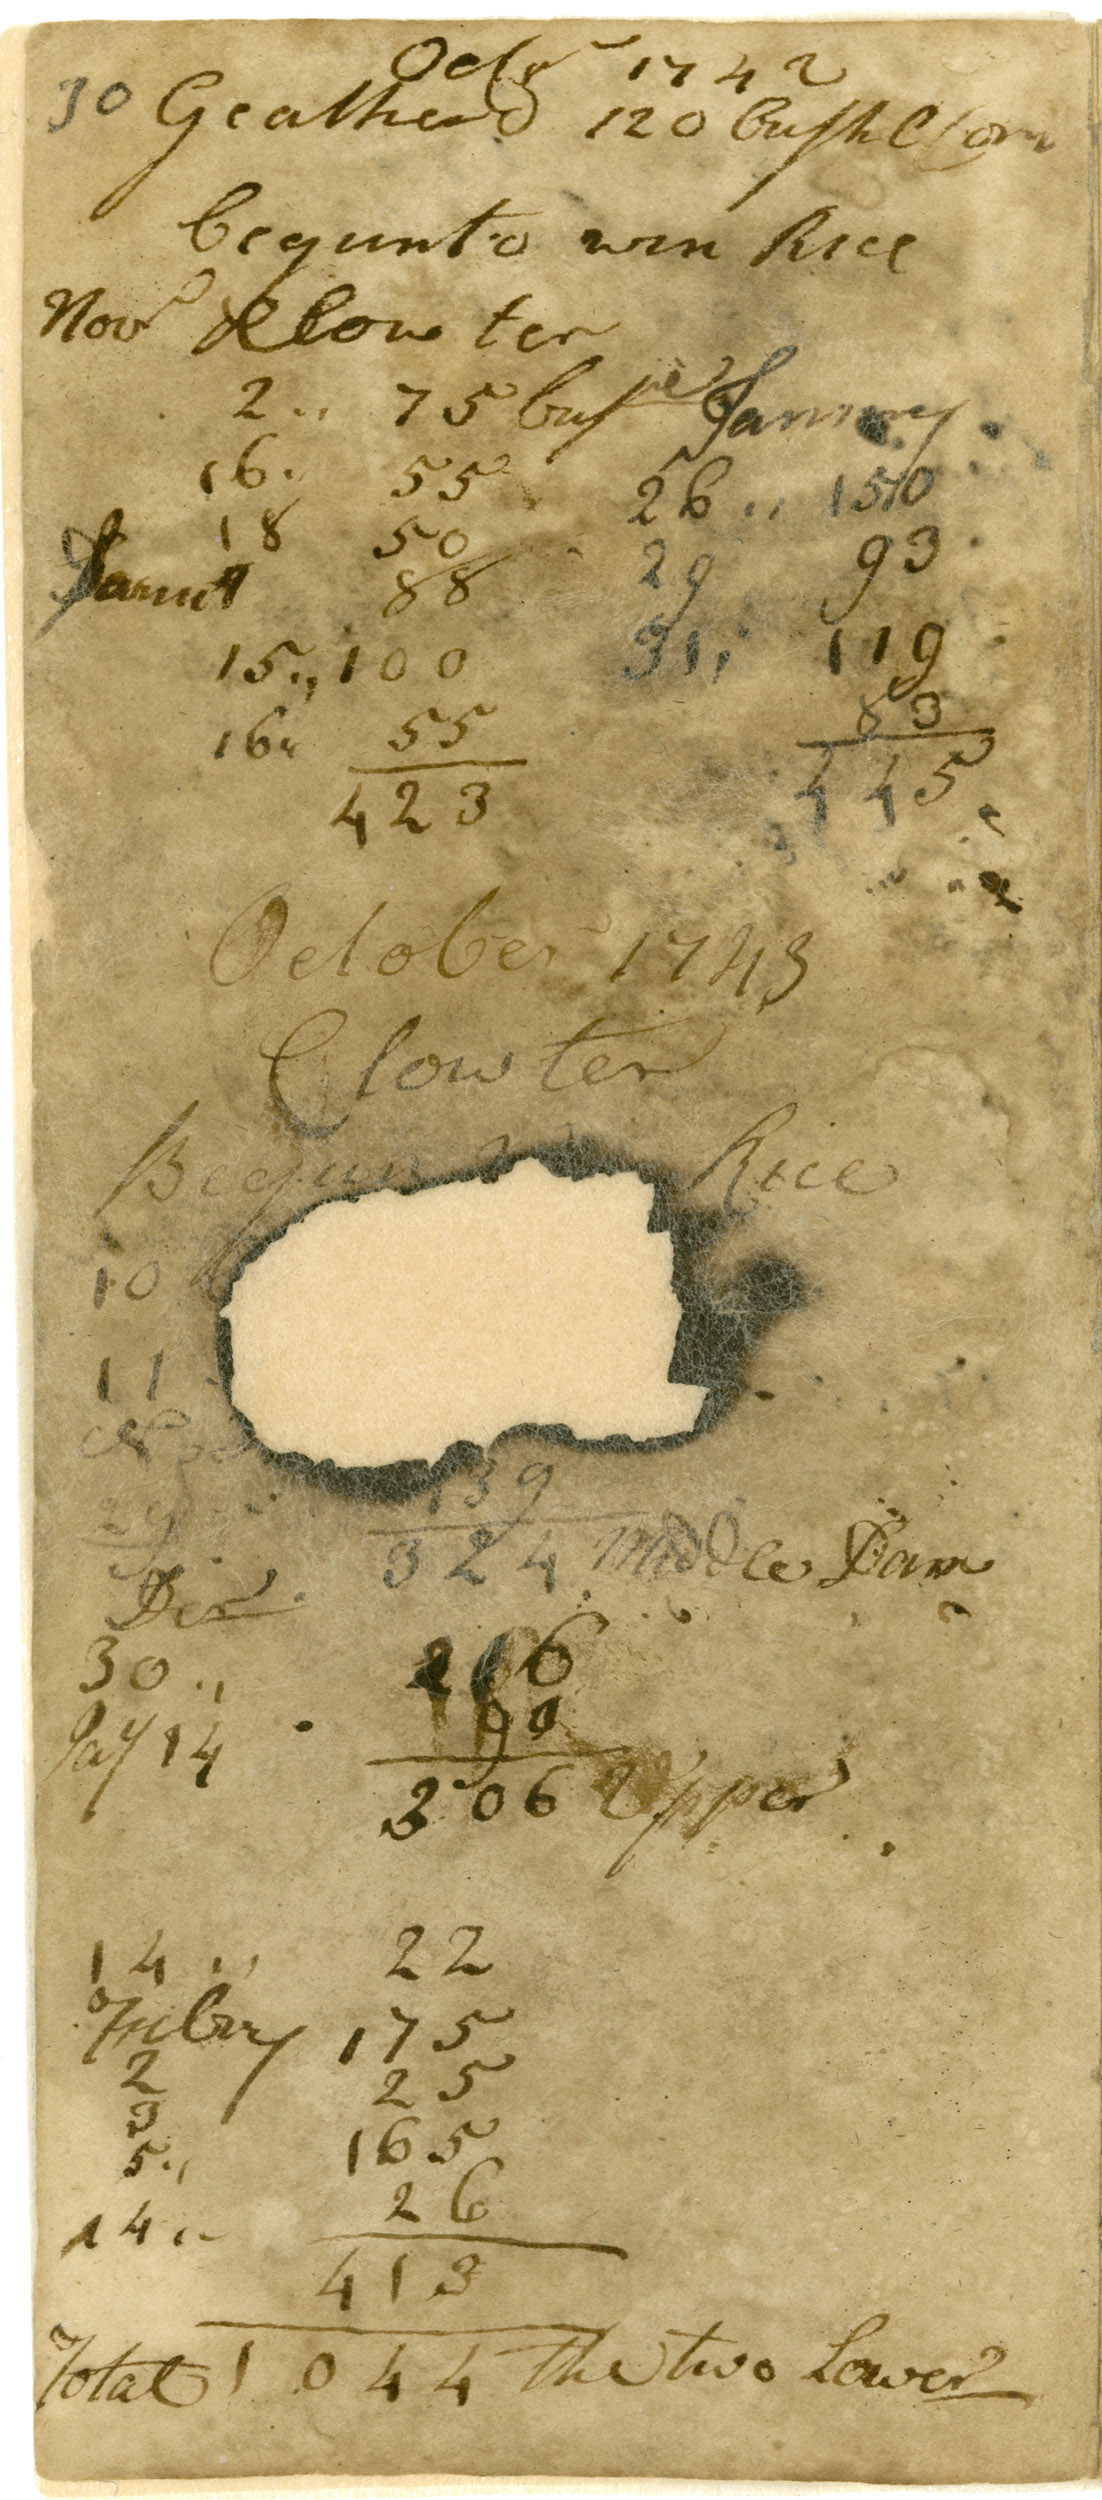 Ravenel Diary 1731-1860, page 3